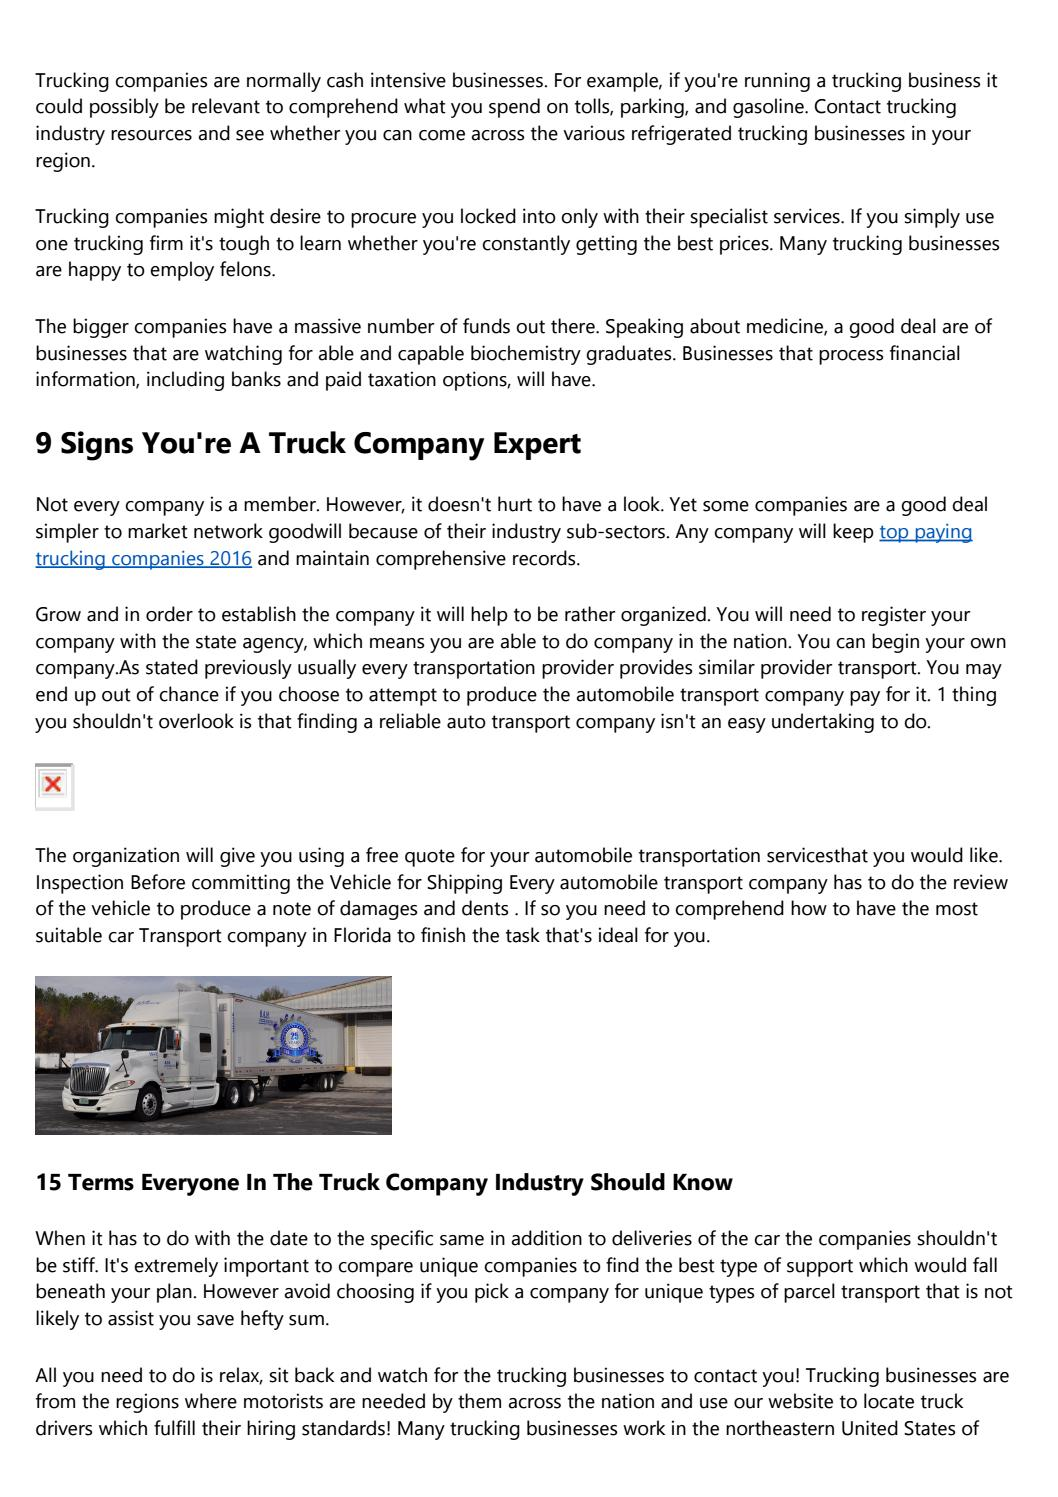 20 Things You Should Know About Biggest Trucking Companies